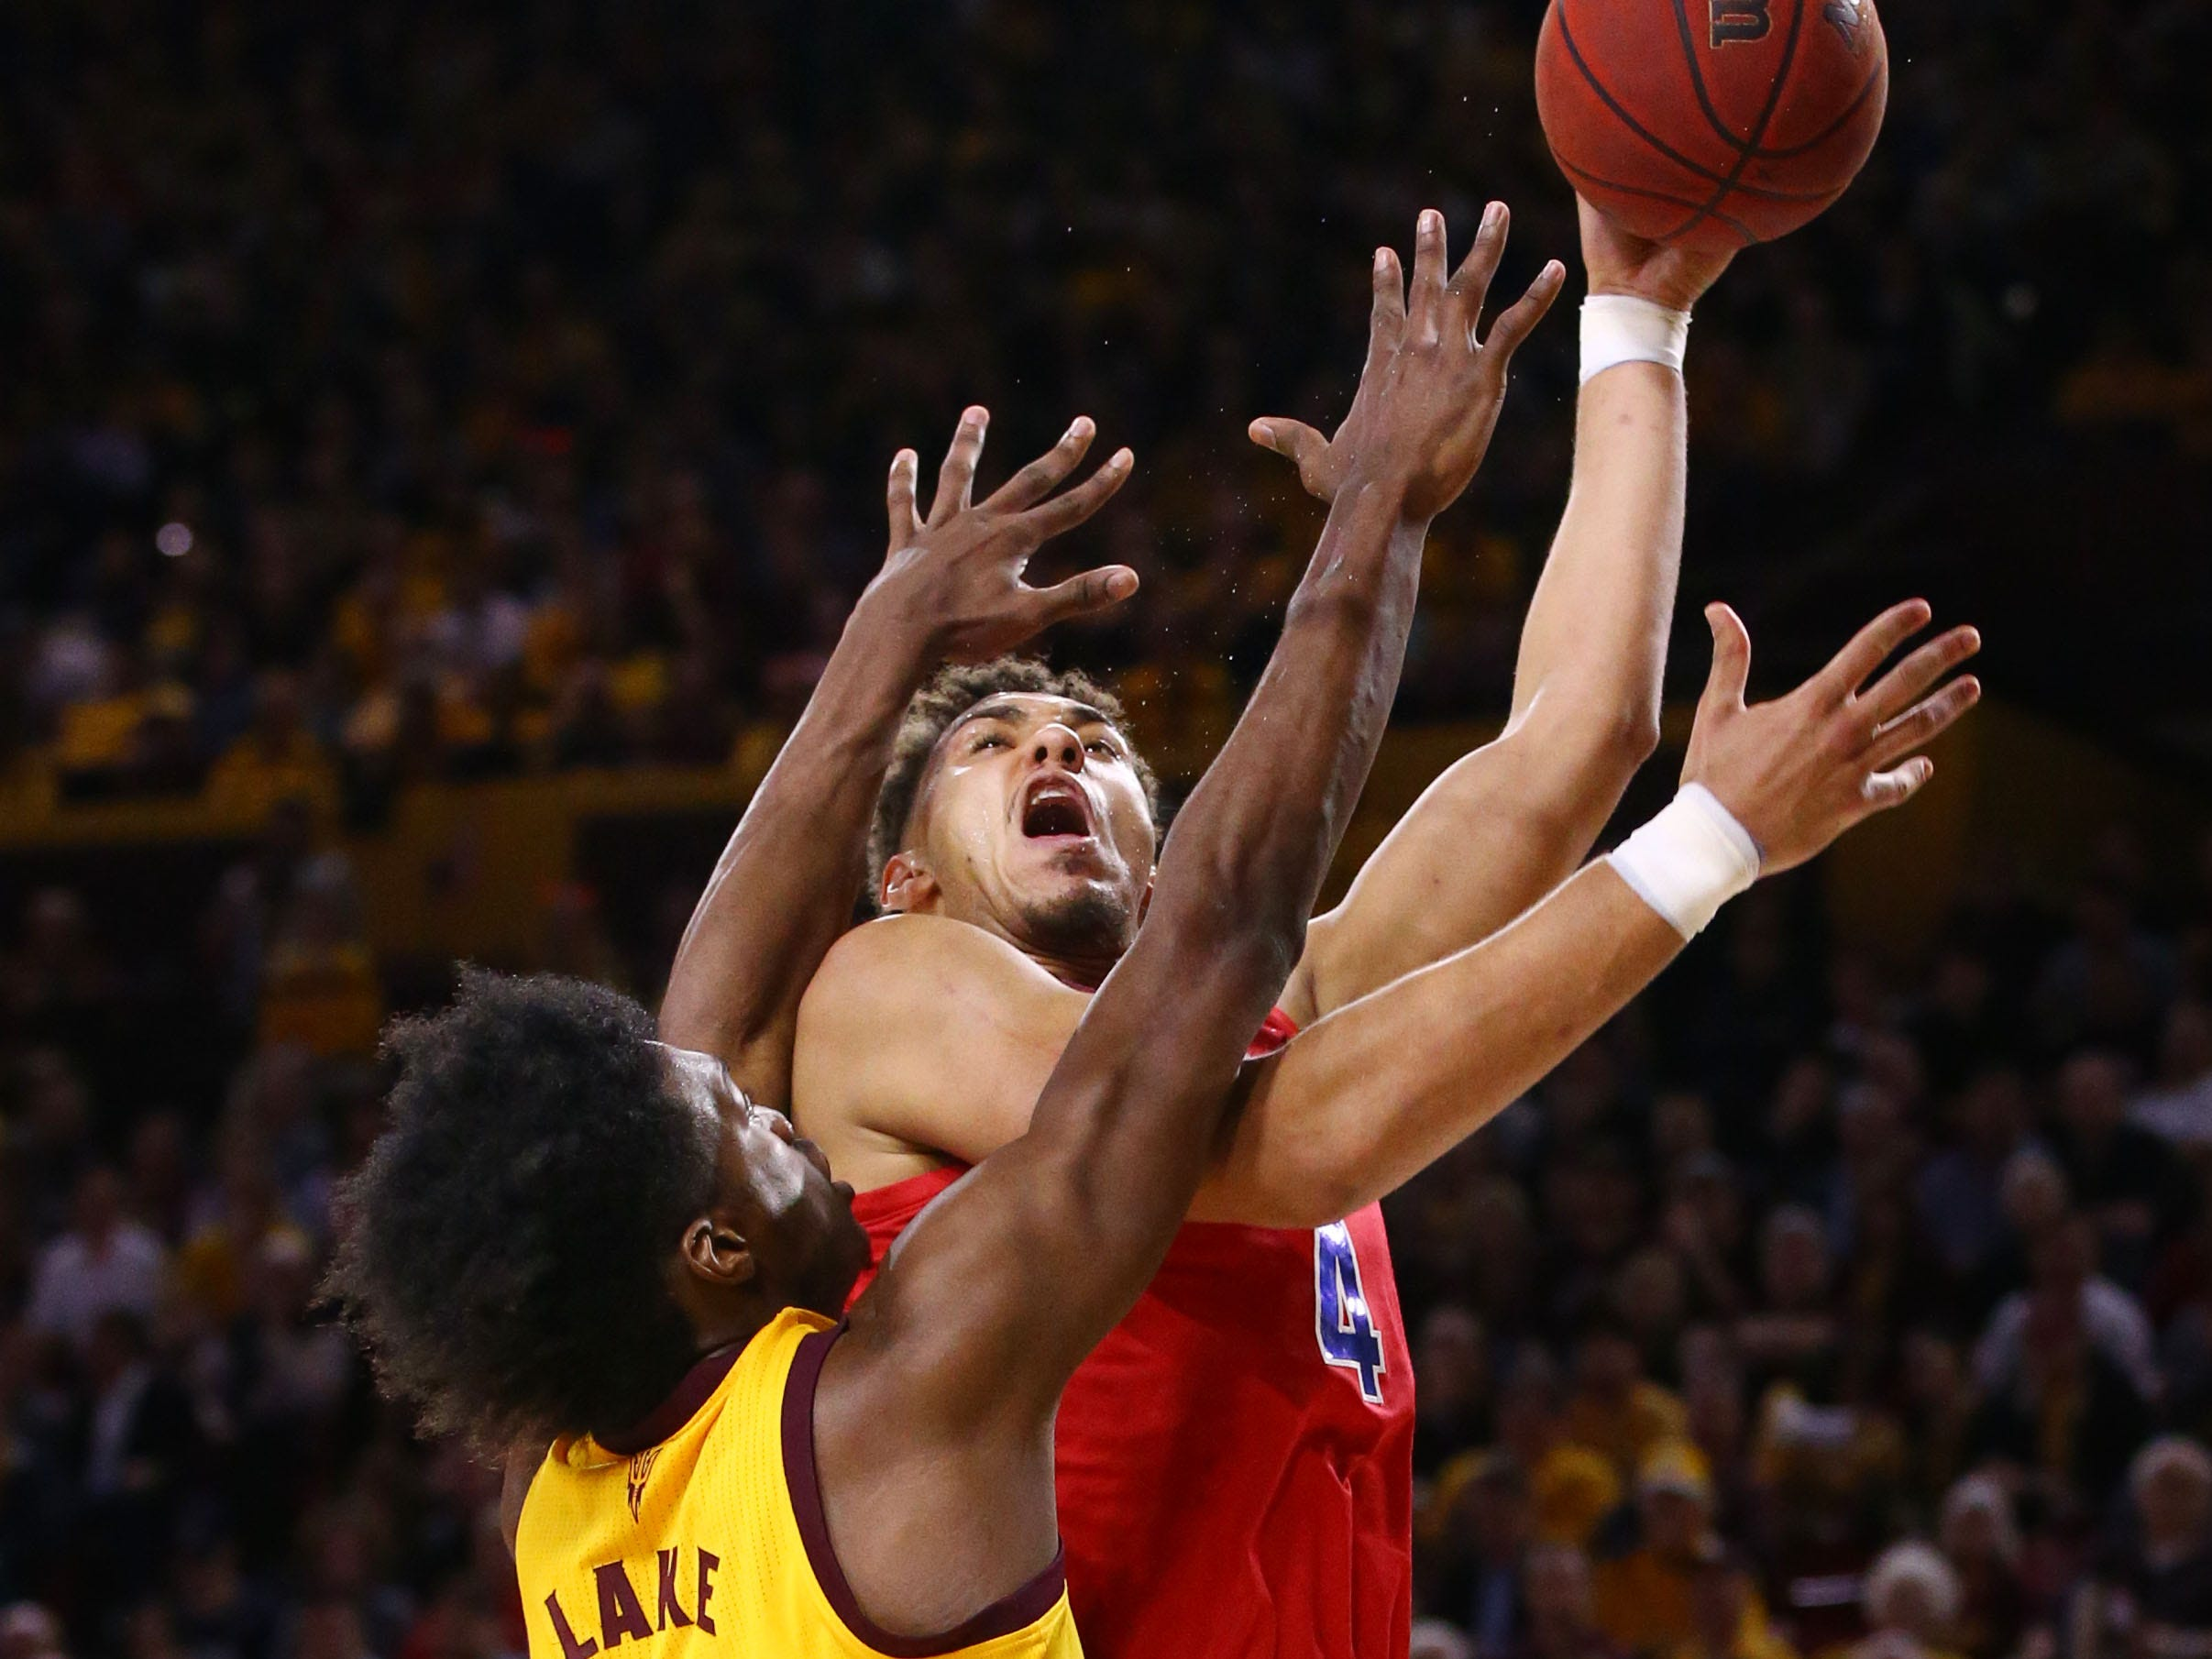 Arizona State forward De'Quon Lake guards Arizona center Chase Jeter in the first half on Jan. 31 at Wells Fargo Arena in Tempe.